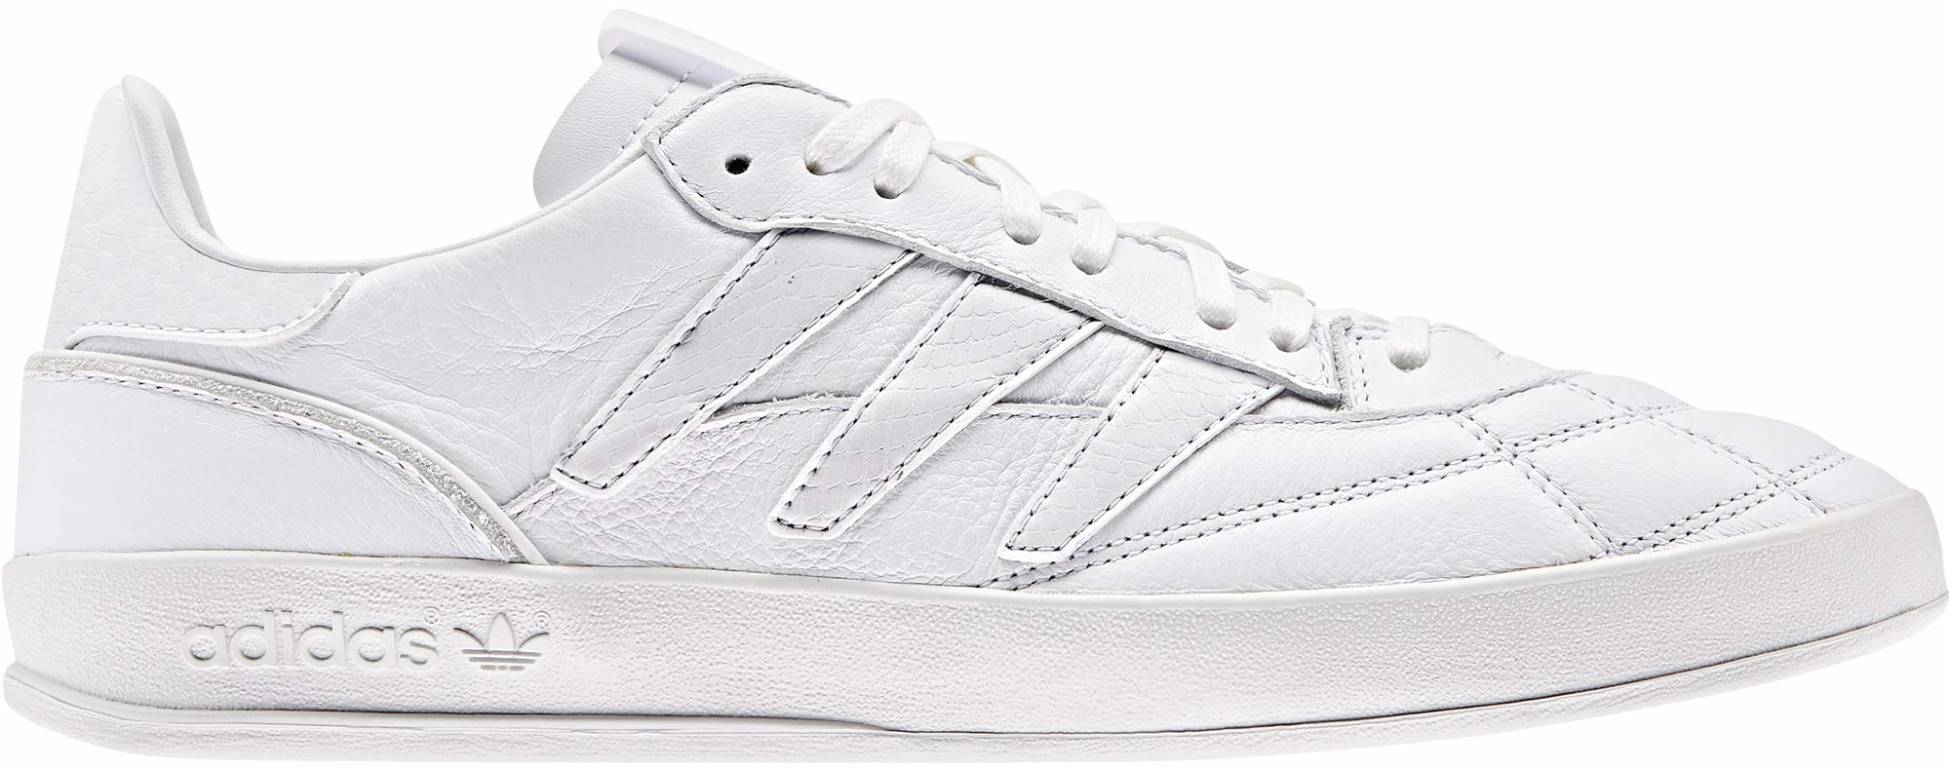 Adidas Sobakov P94 sneakers in 3 colors (only £37) | RunRepeat